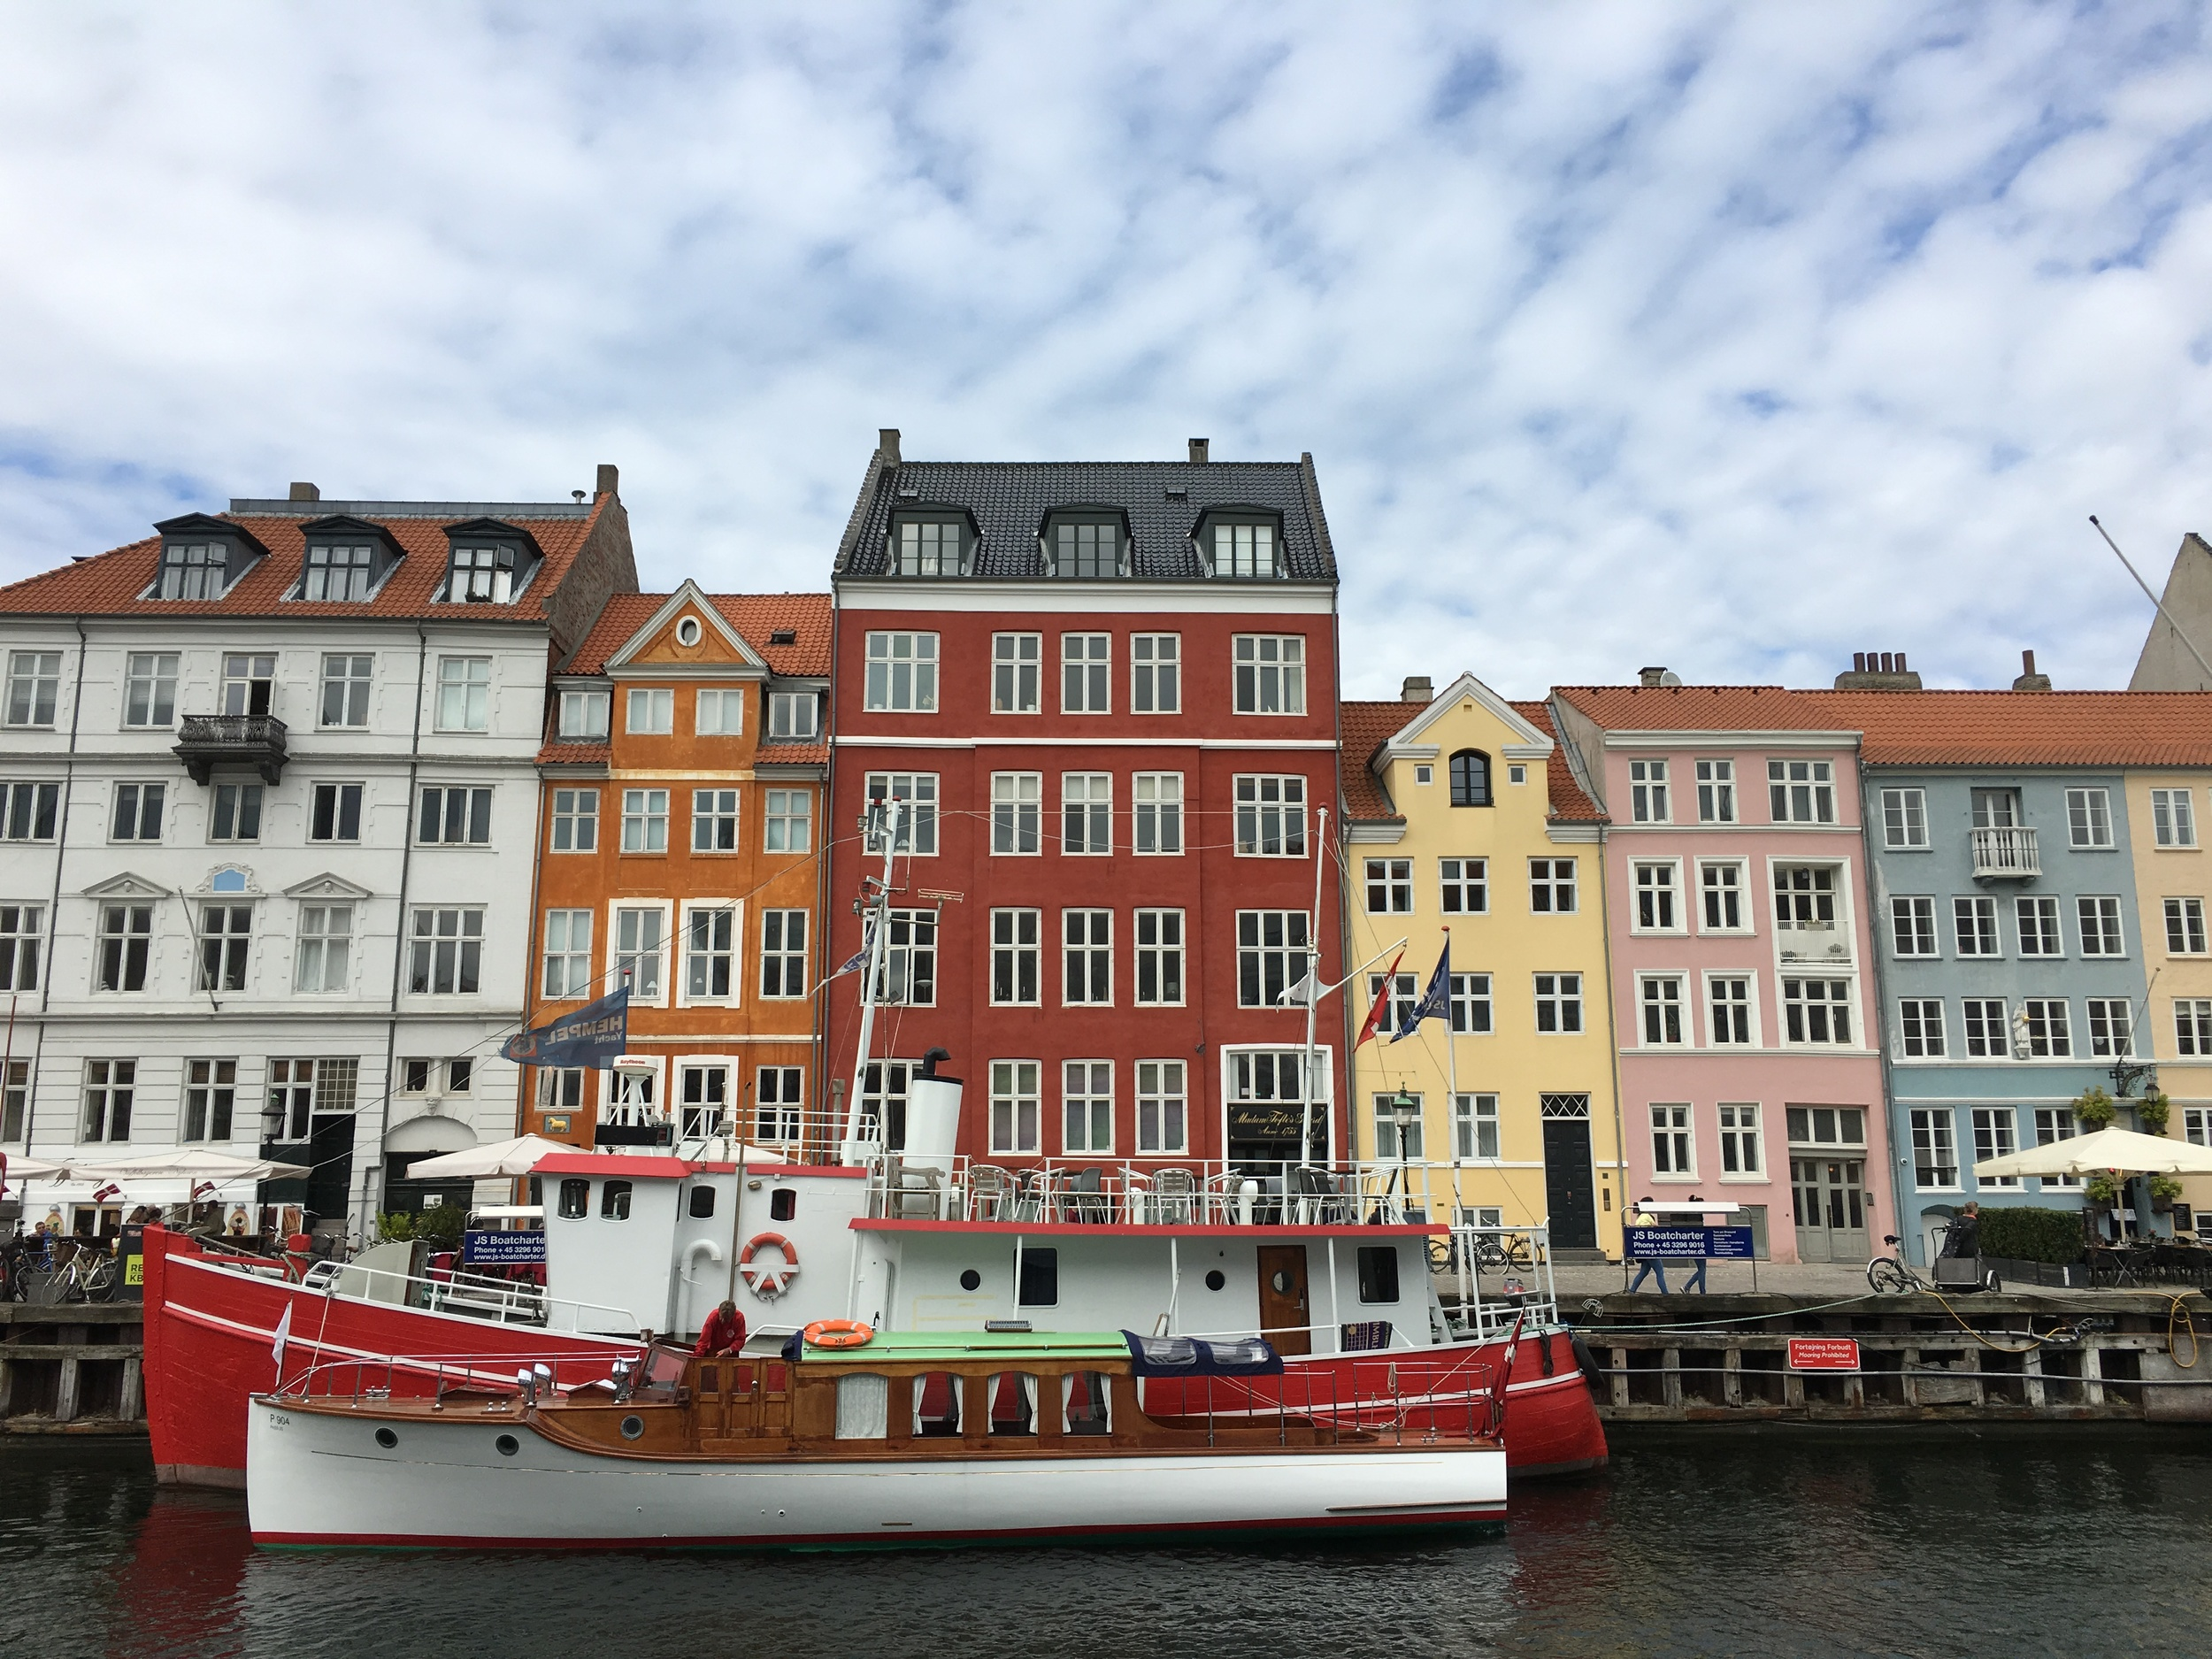 Colorful homes all along the canal in Nyhavn